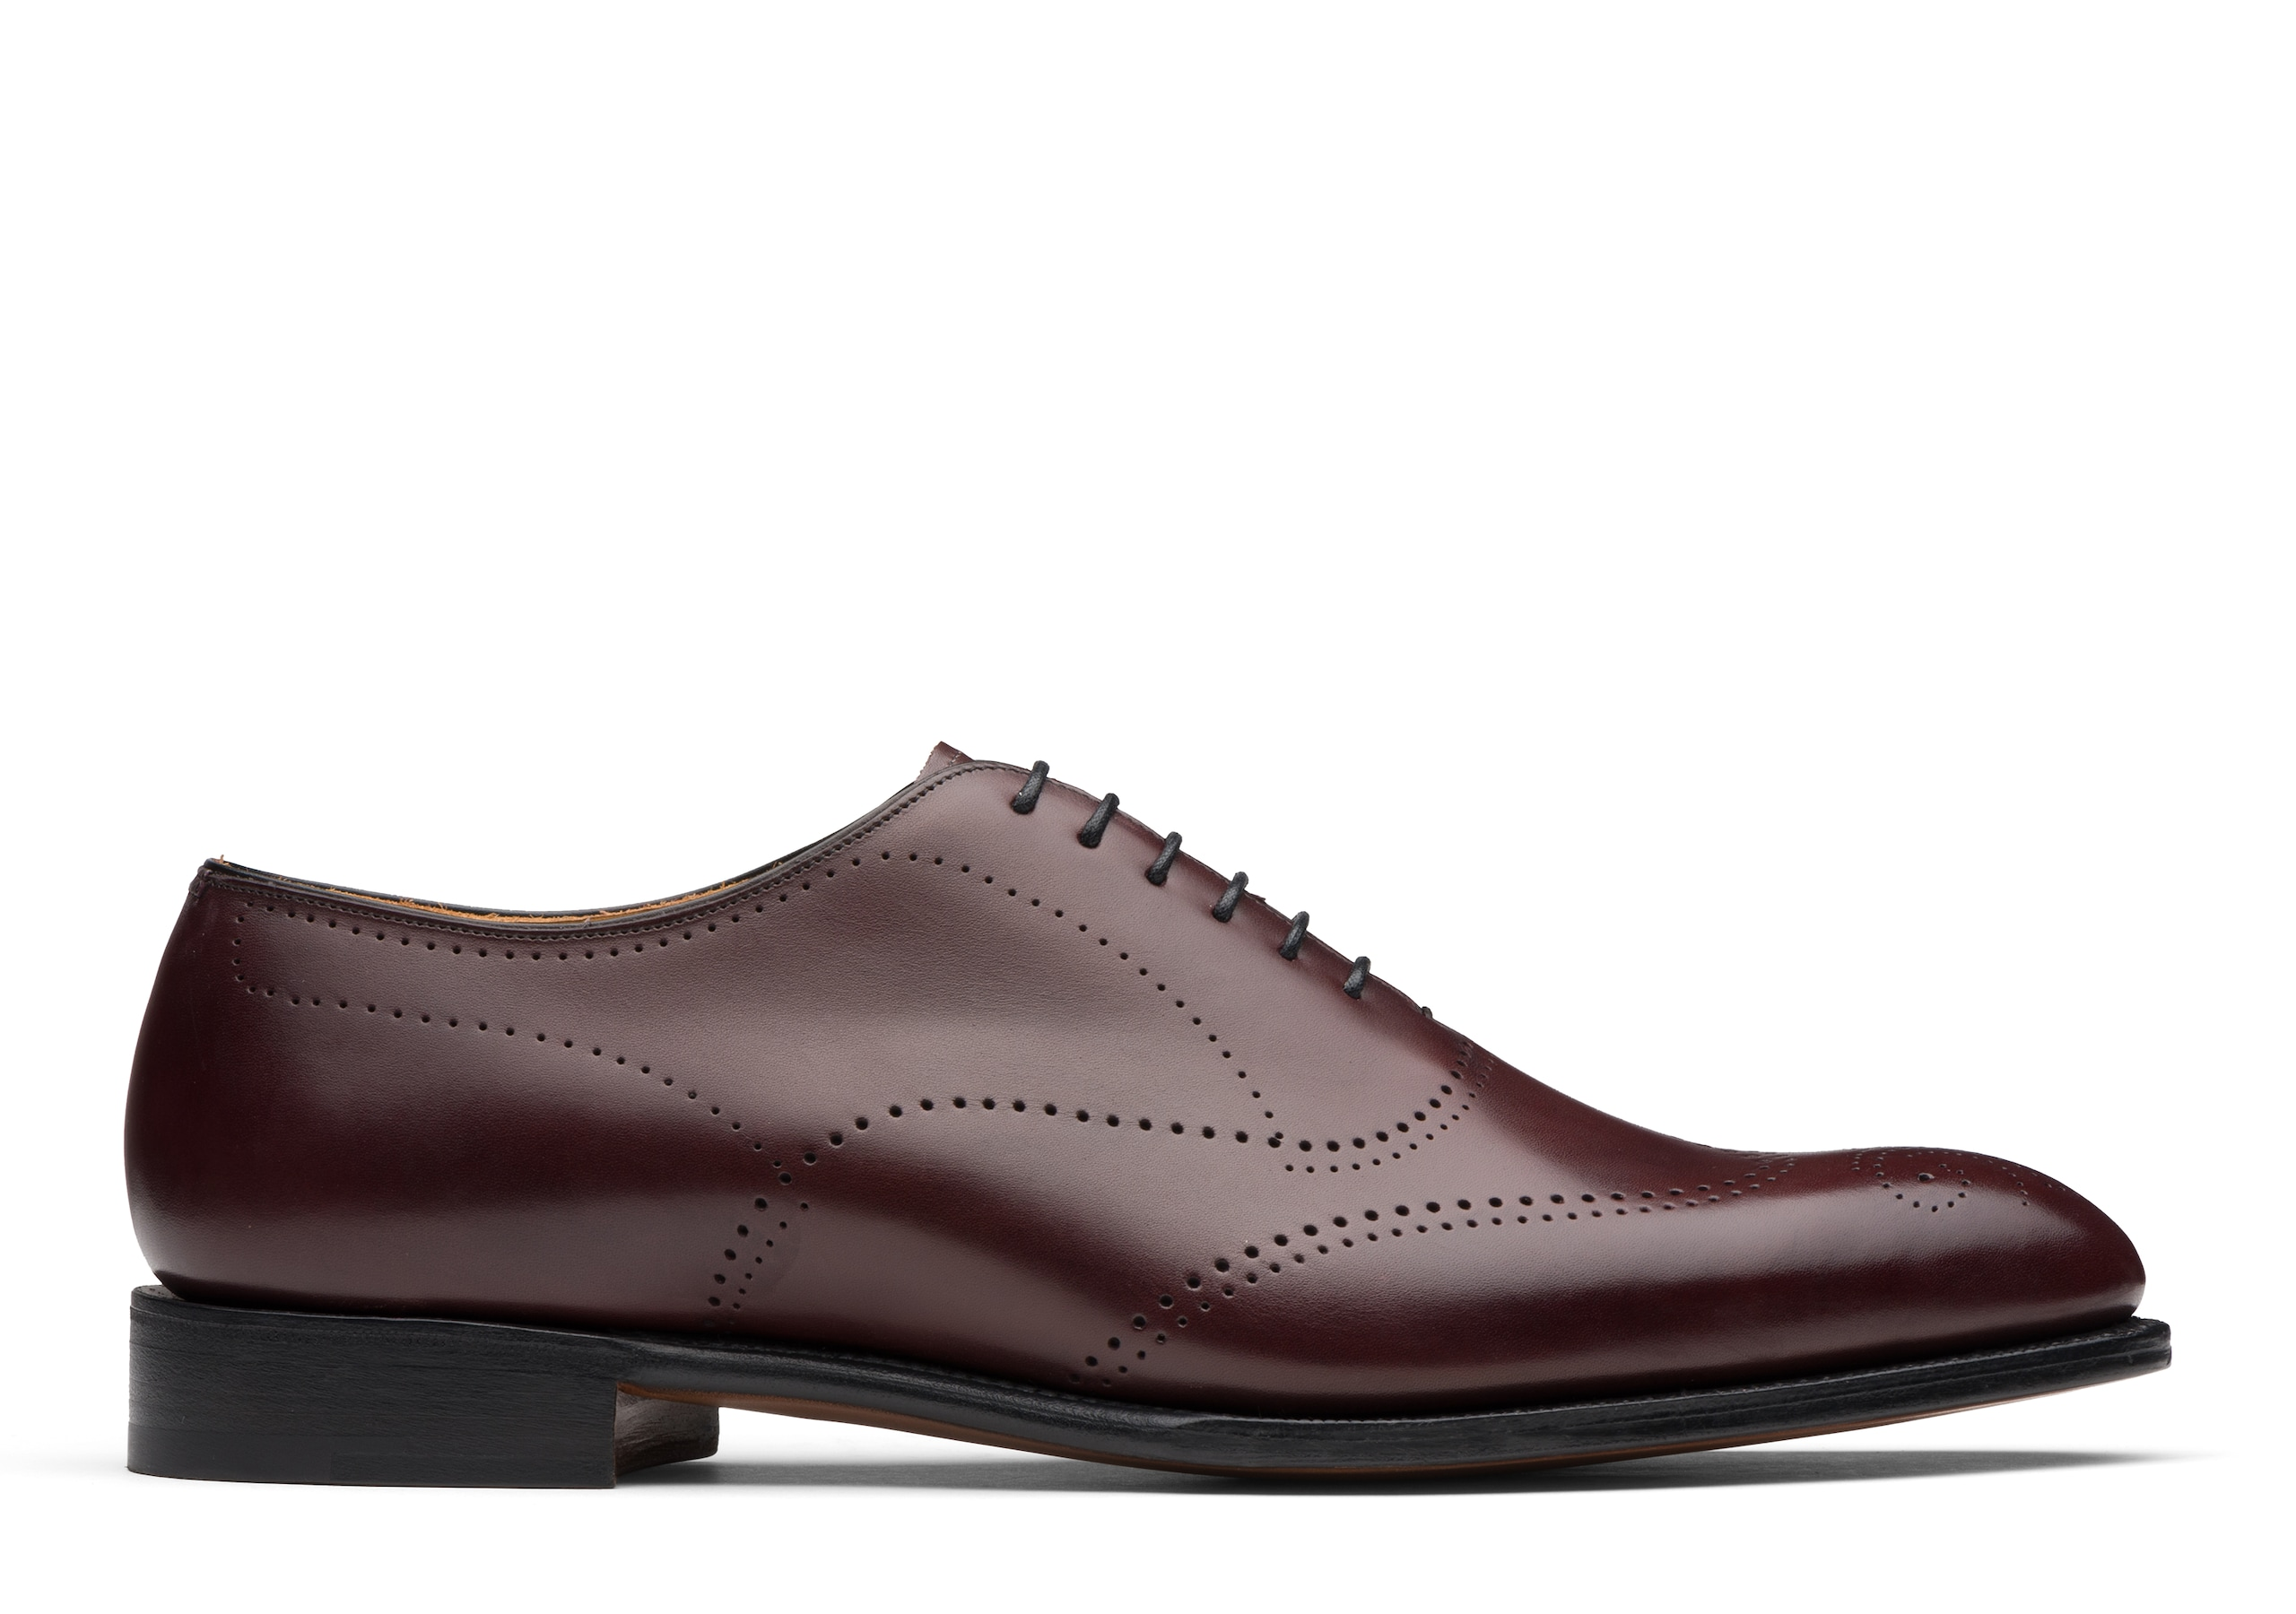 Dickens Church's Doha Leather Oxford Brogue Burgundy